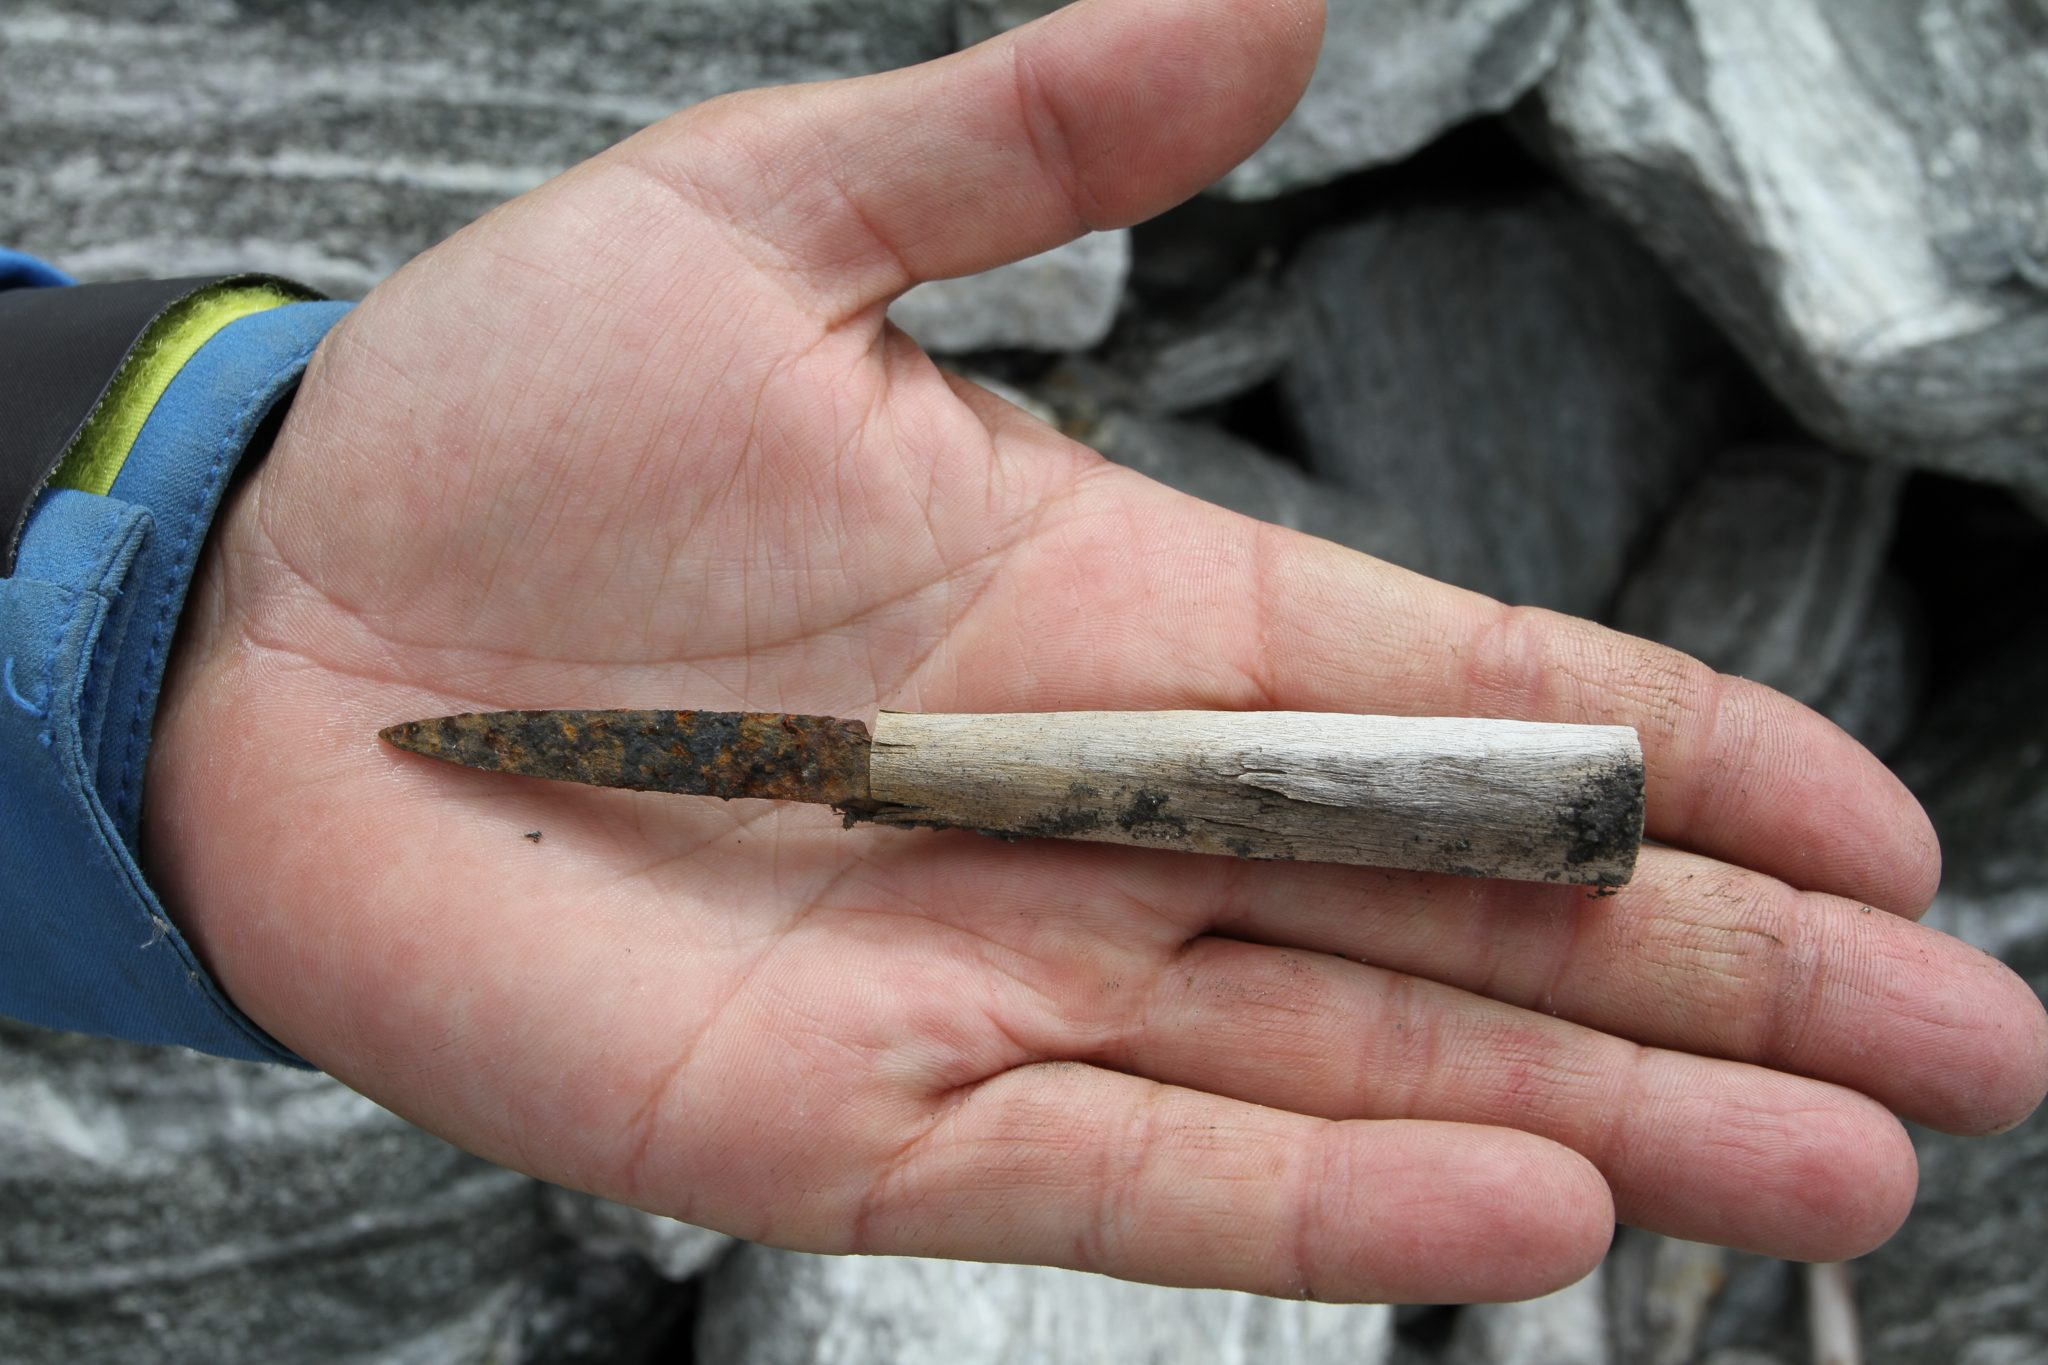 Knife: A small iron knife with a birchwood handle, found just below the pass area at Lendbreen. Radiocarbon-dated to the 11th Century AD. Photo: Espen Finstad, secretsoftheice.com.